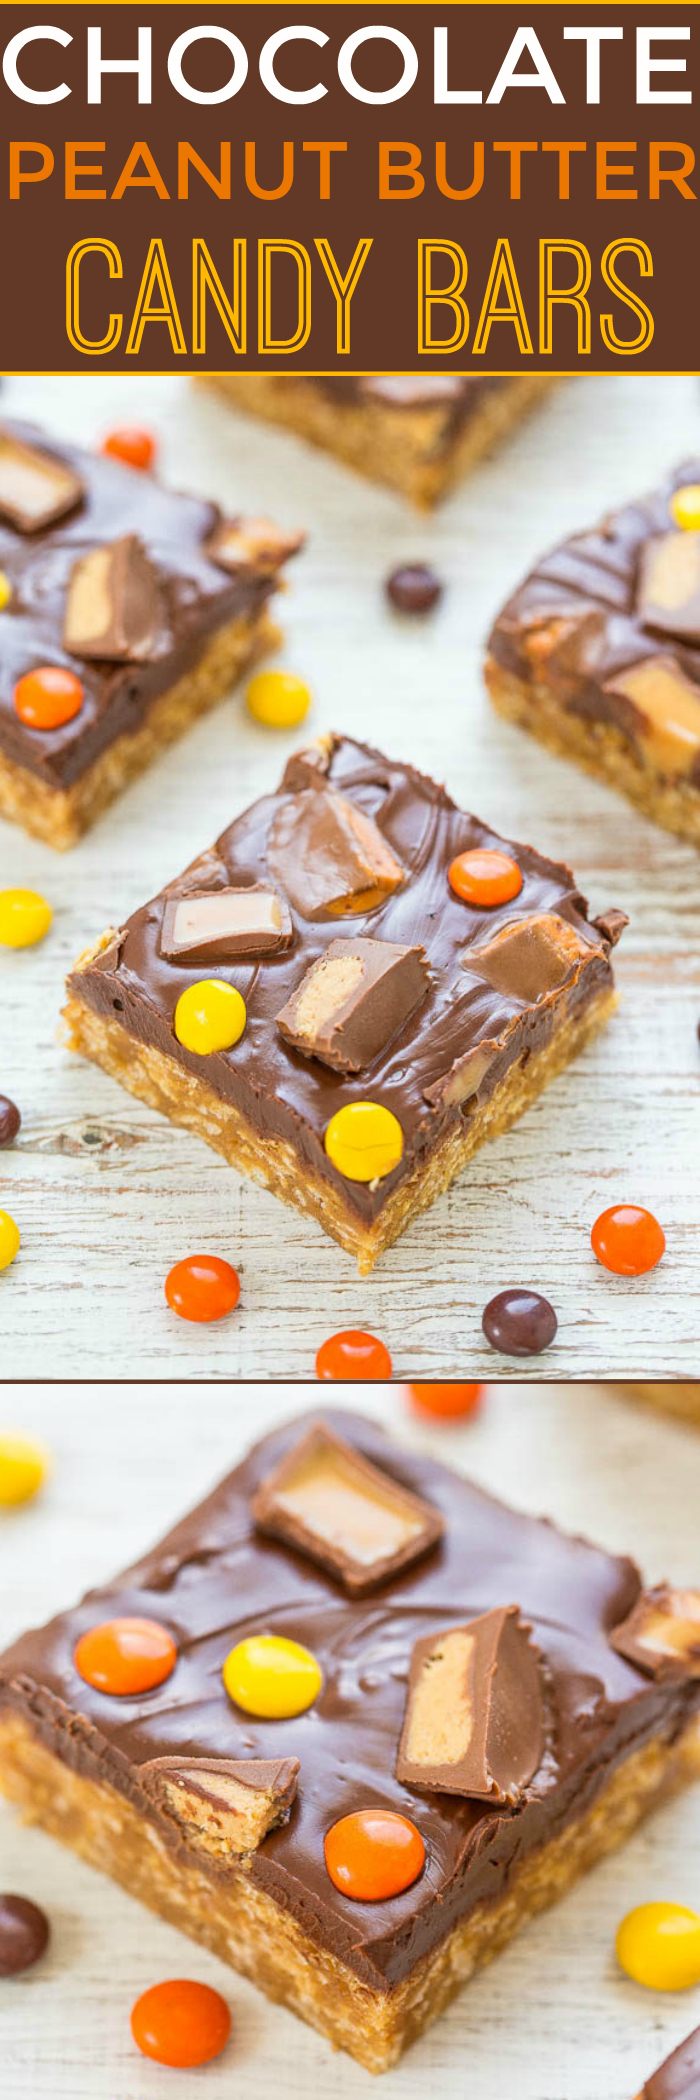 Chocolate Peanut Butter Candy Bars - Easy, no-bake, soft, chewy PEANUT BUTTER bars topped with CHOCOLATE and CANDY!! Great for using up Halloween or extra candy because you can top with any candy!!